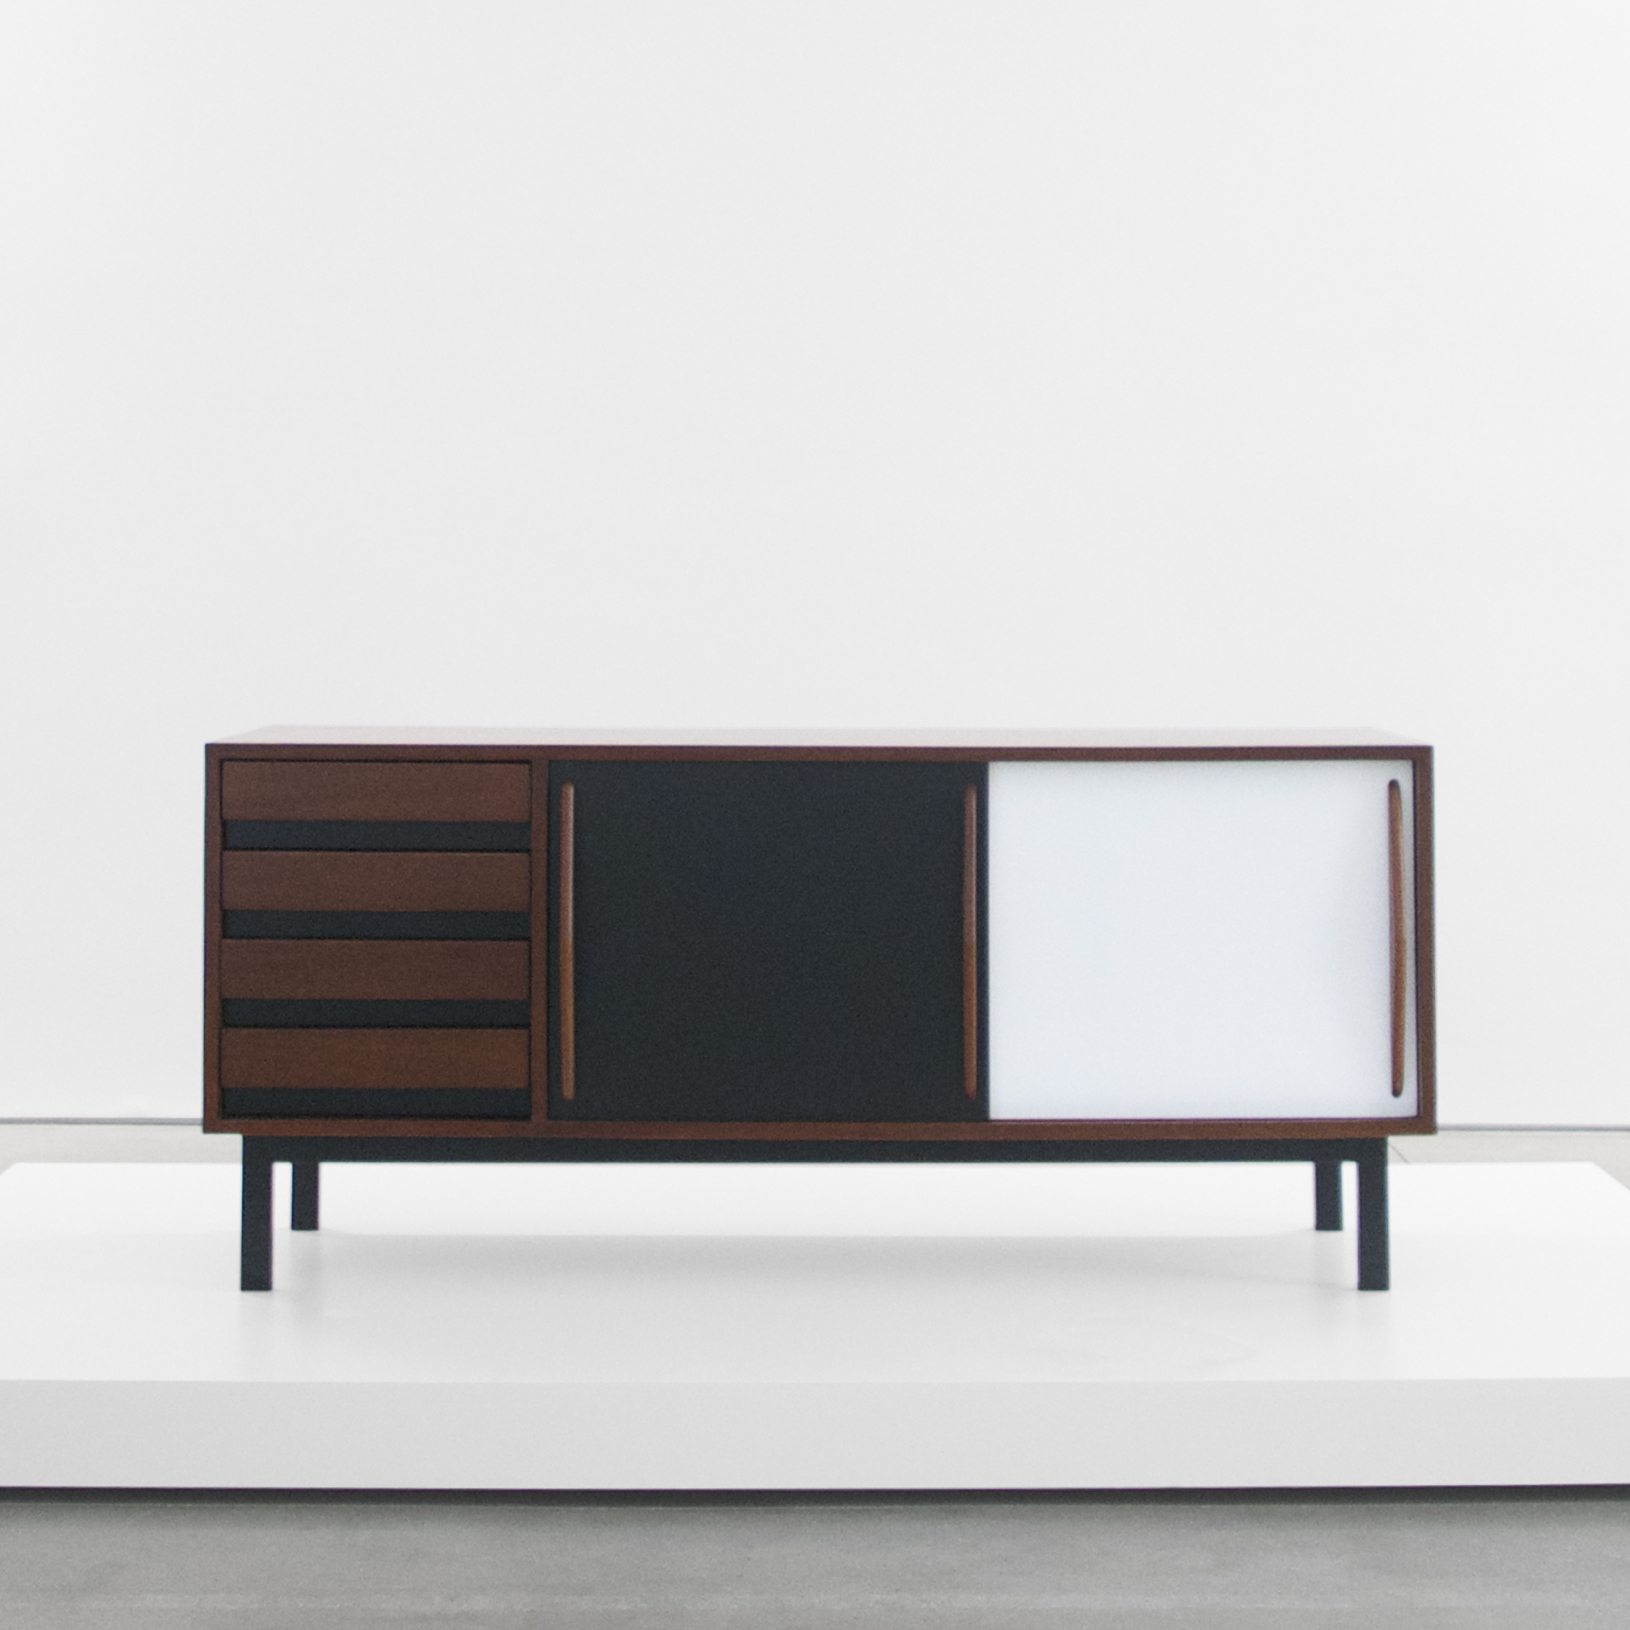 charlotte perriand Cabinet from Cite Cansado, Mauritania sold